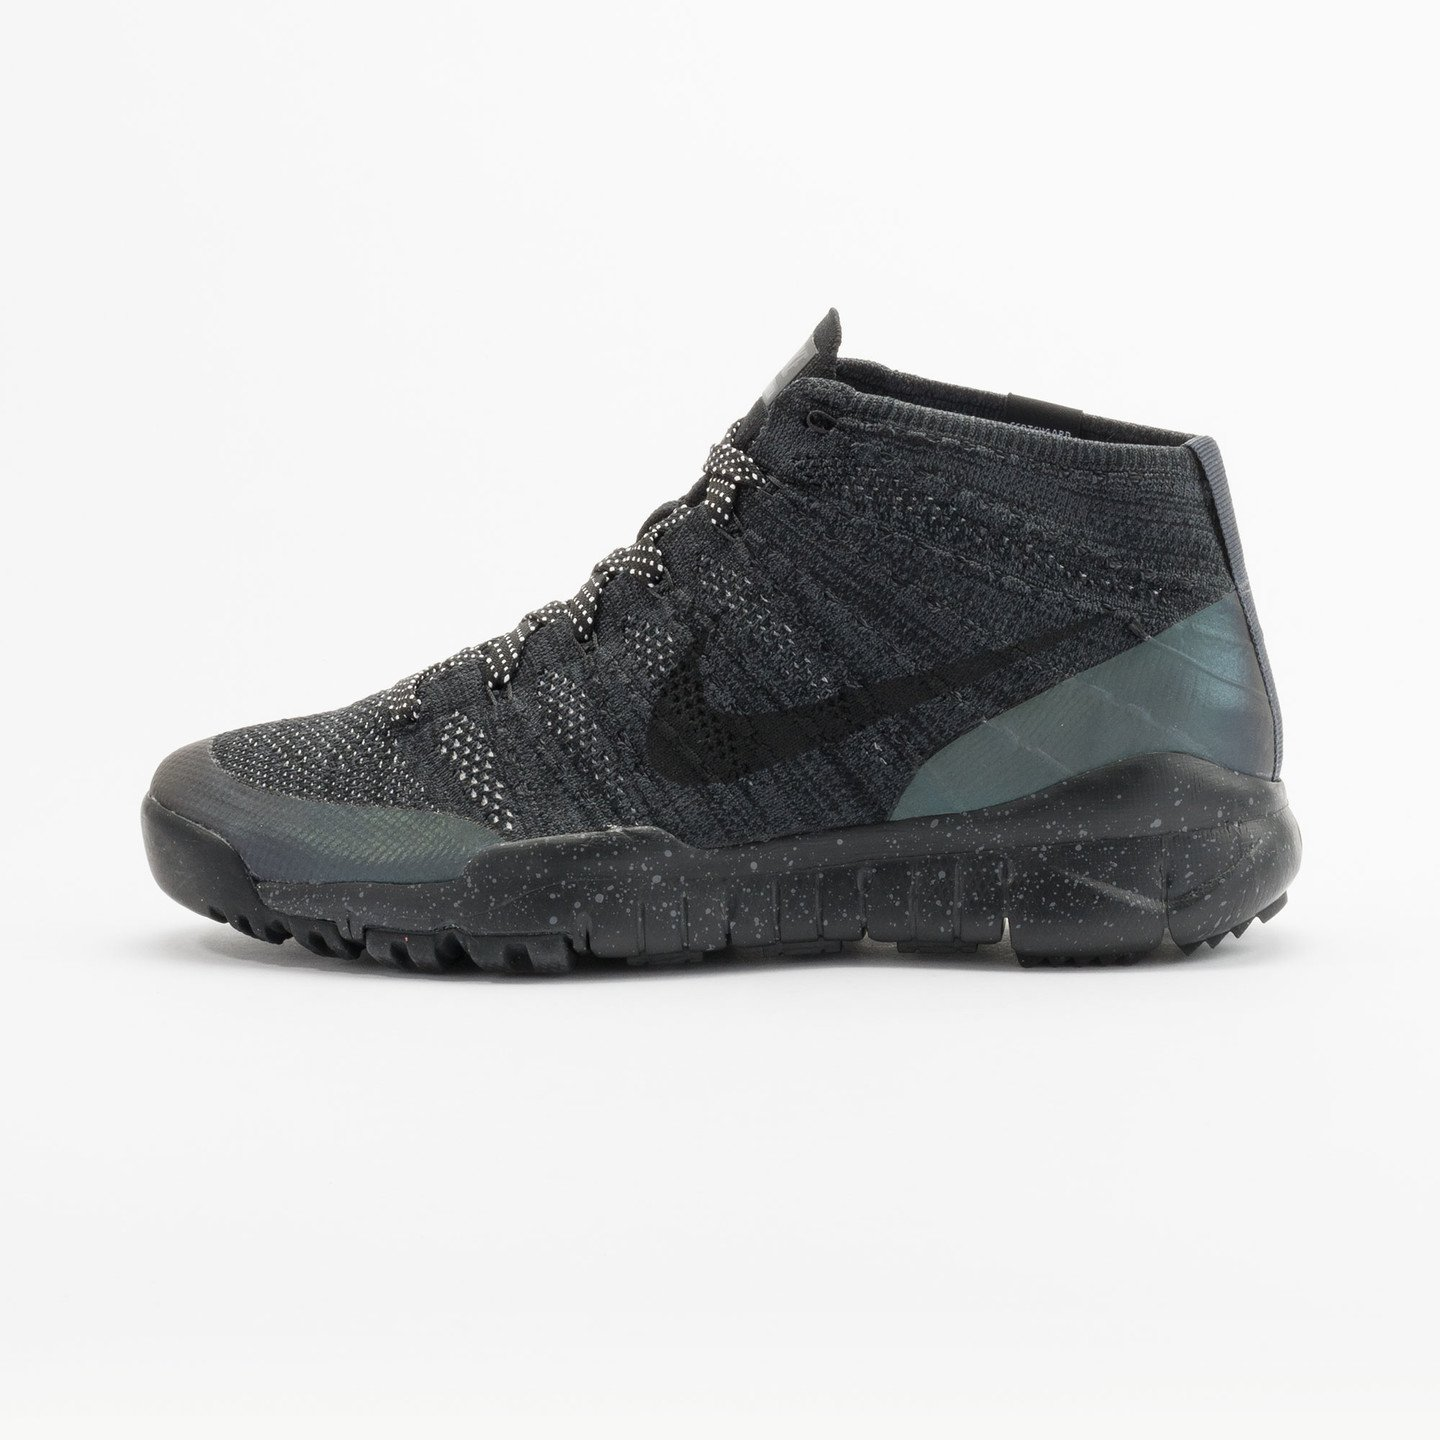 Nike Flyknit Trainer Chukka Sneakerboot Black / Anthracite 805092-001-46